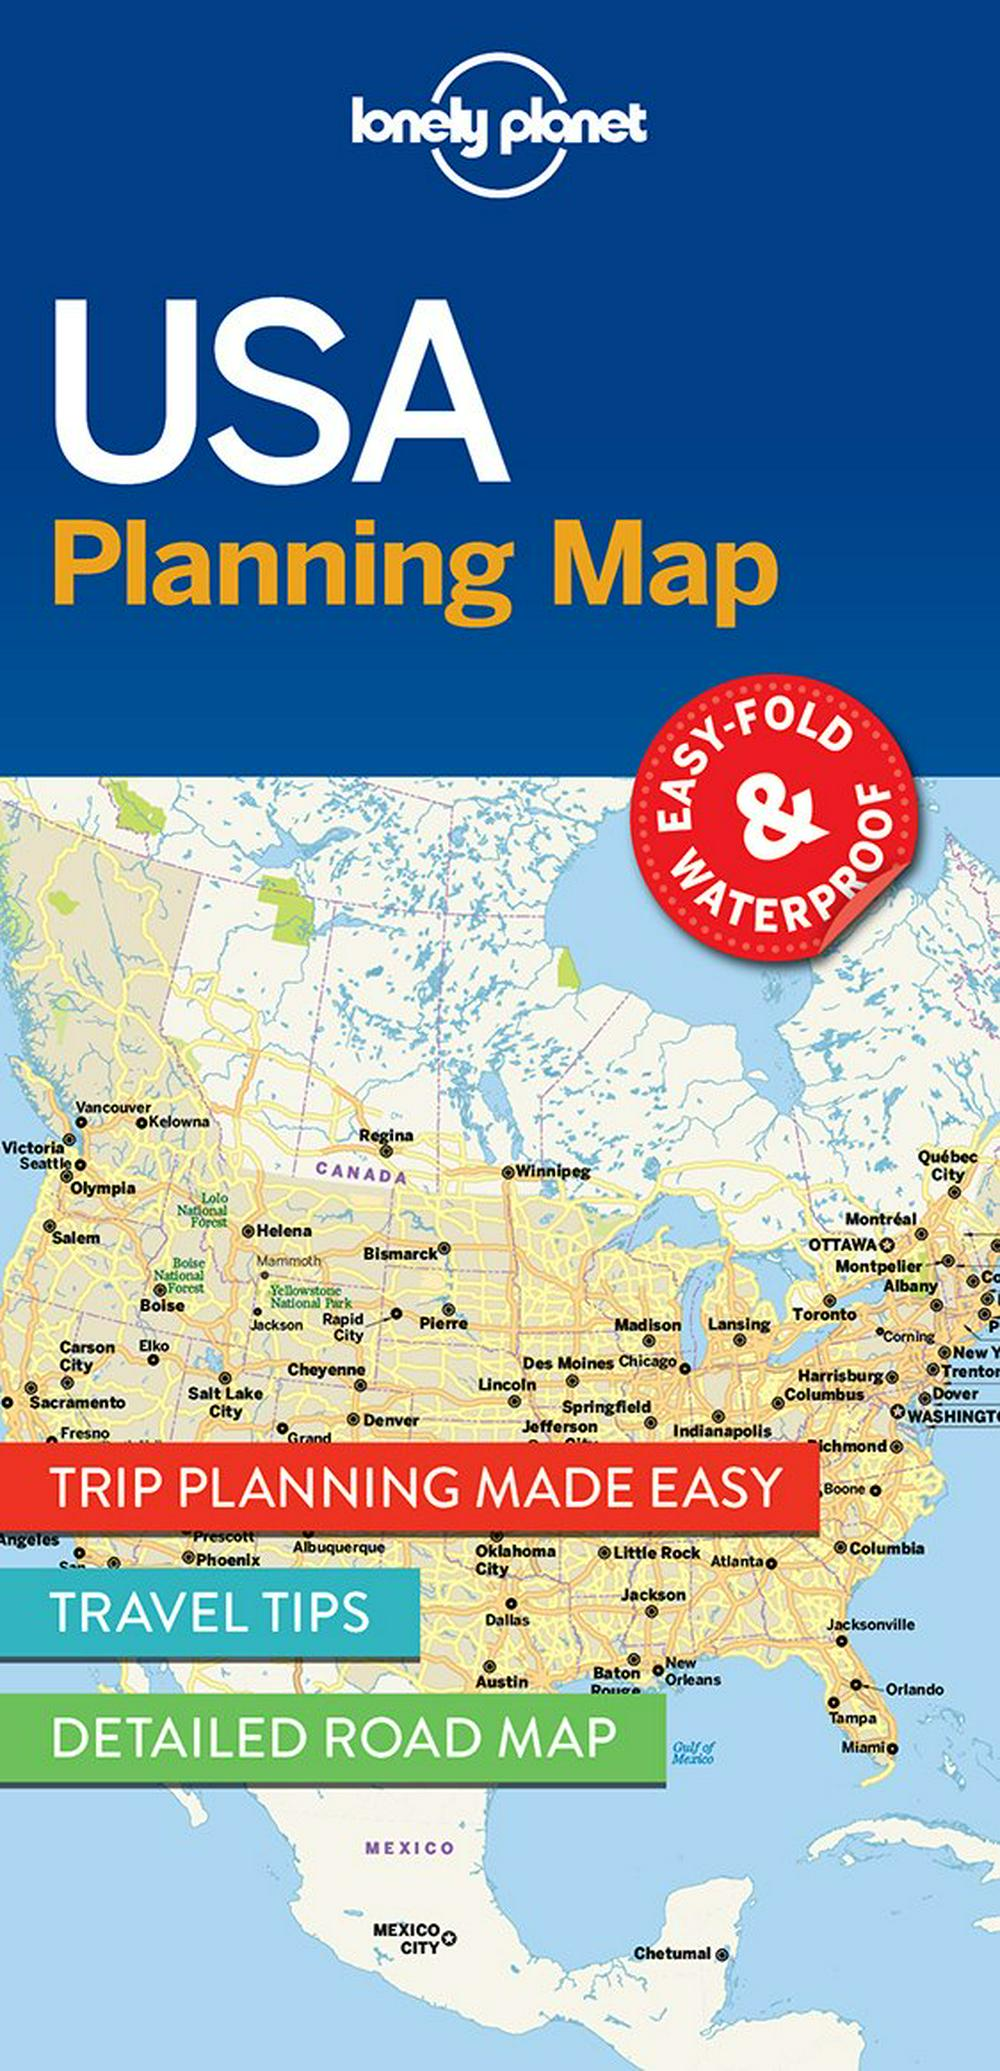 Lonely Planet USA Planning MapTravel Guide